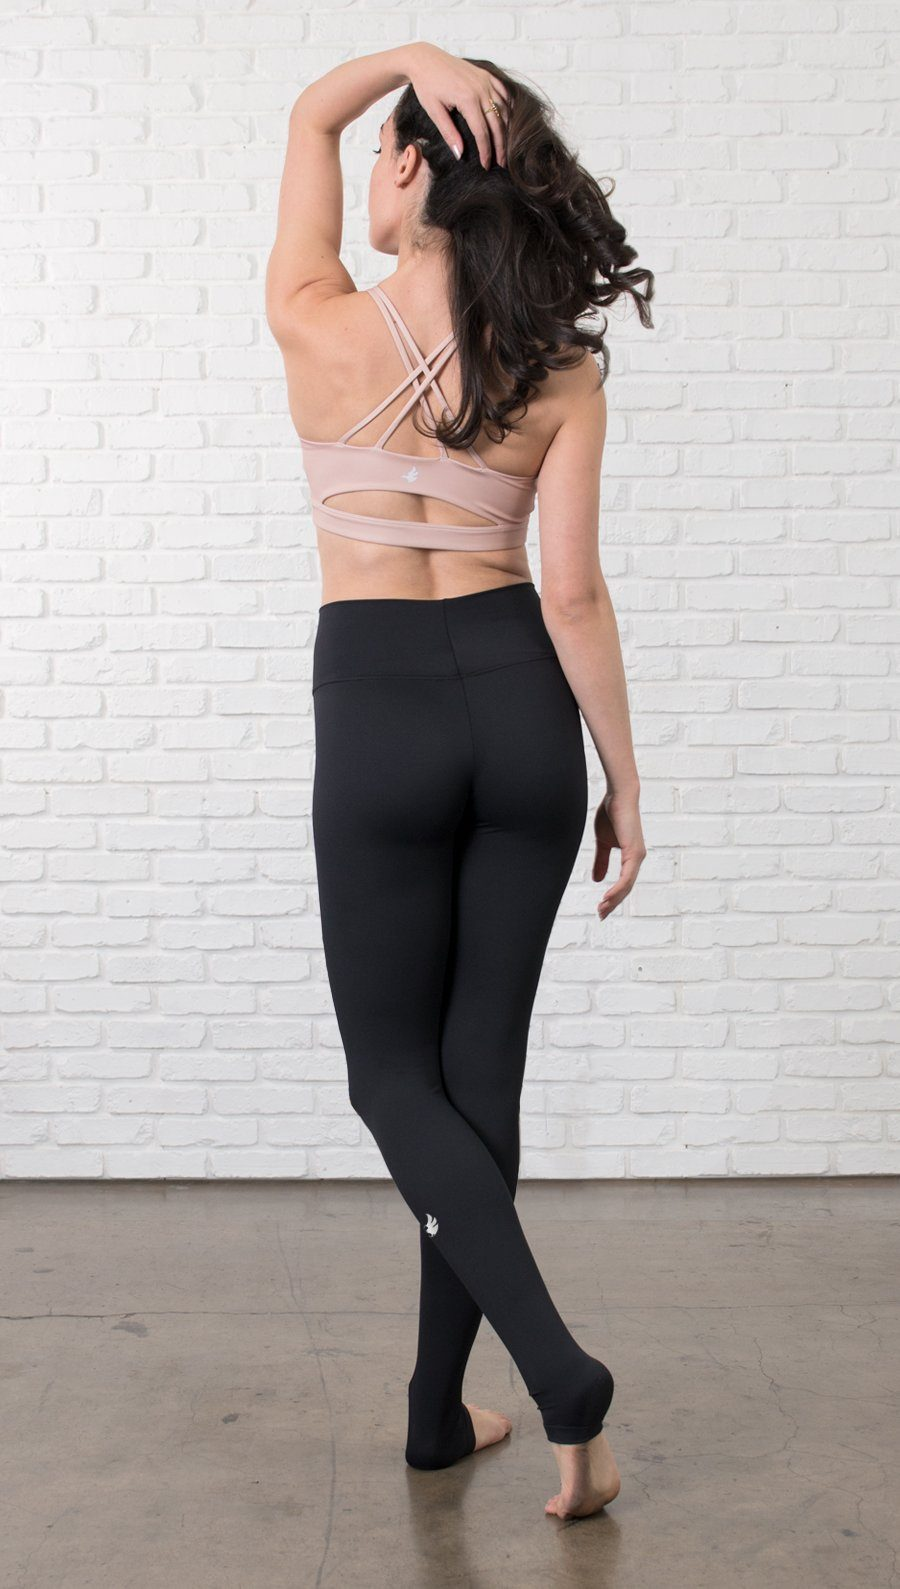 Closeup left view of model wearing black full-length leggings